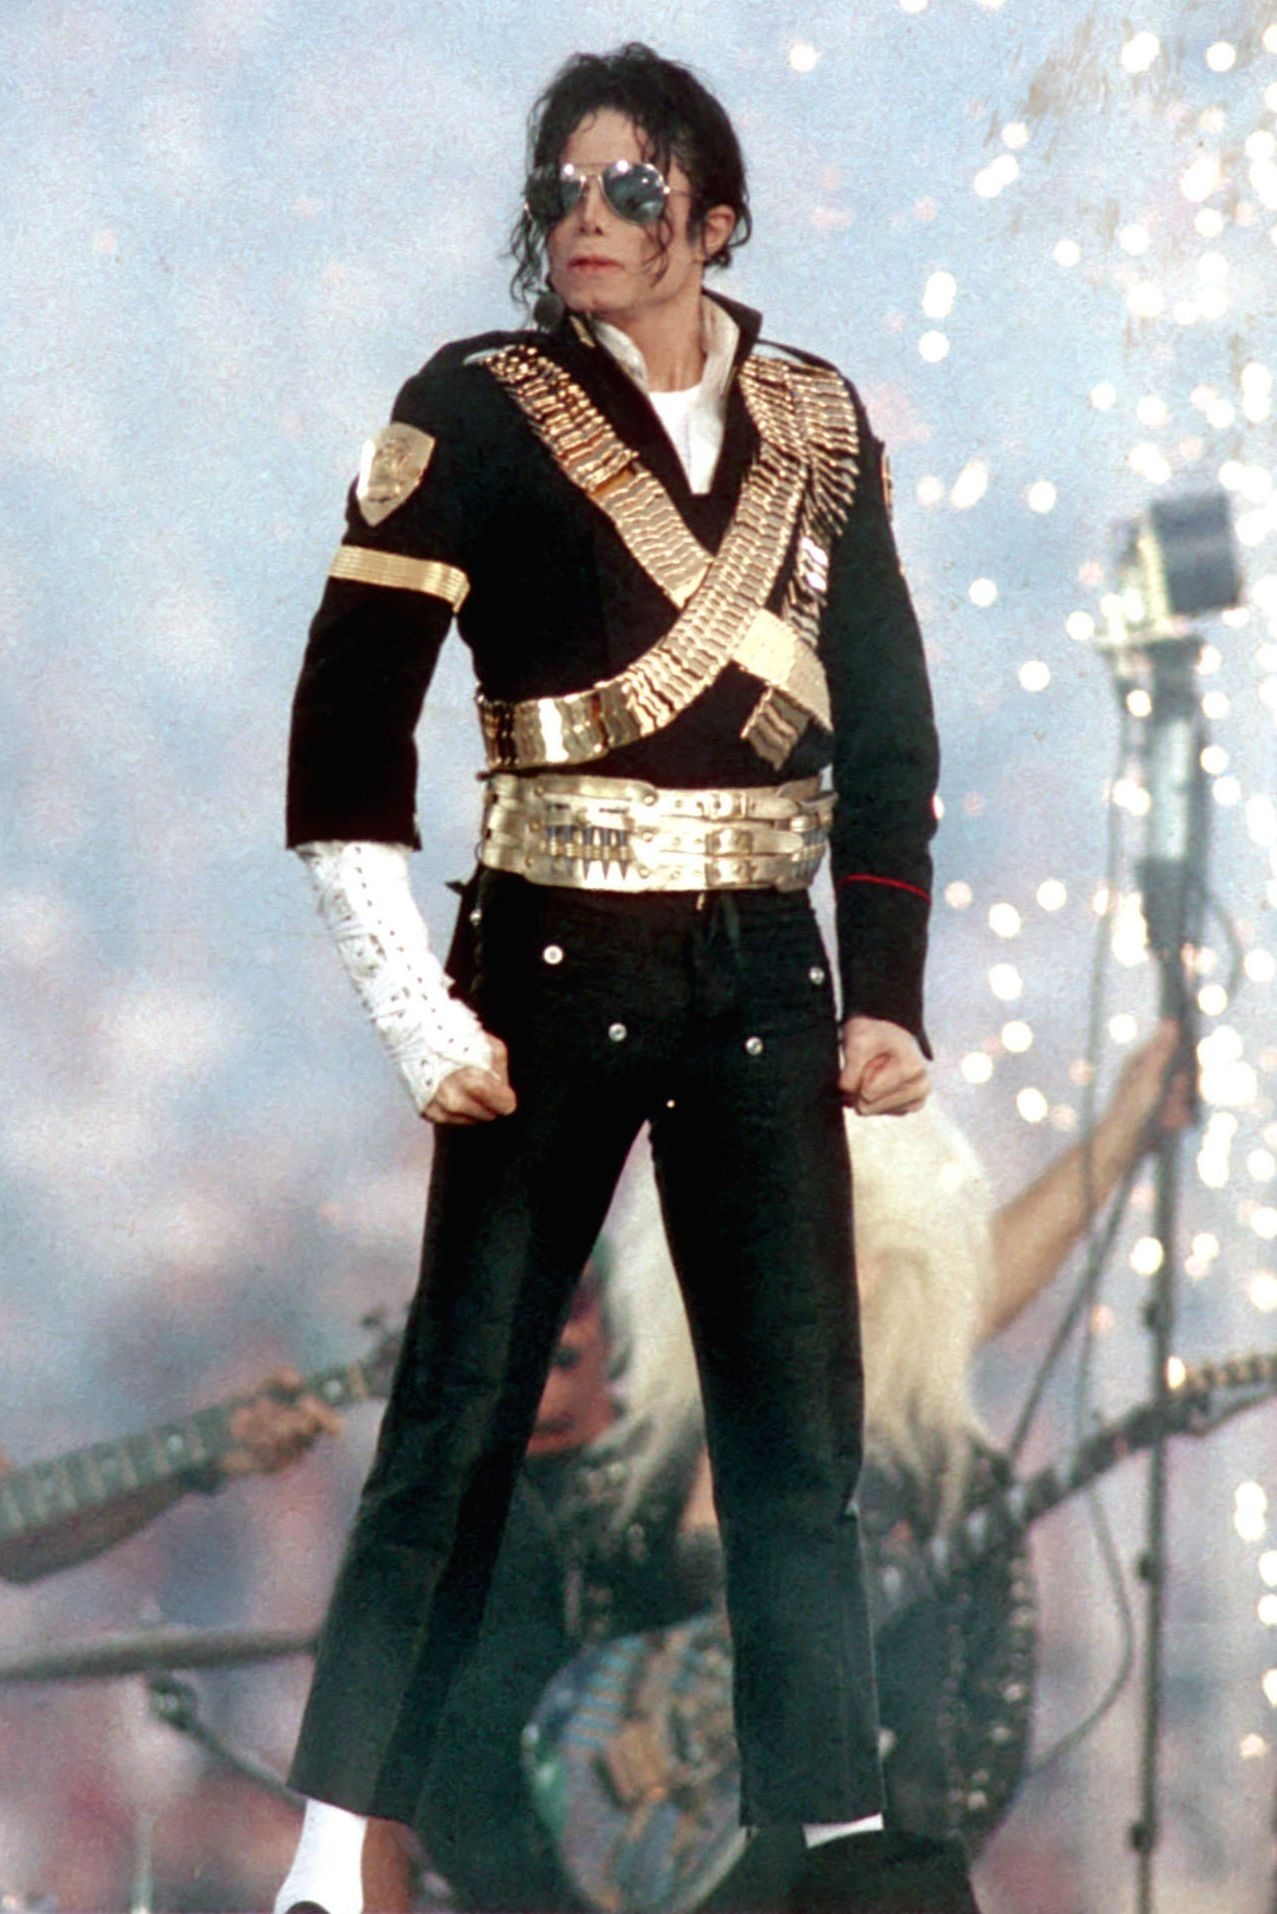 The Best Costumes From Super Bowl Halftime Performances in Michael Jackson Super Bowl